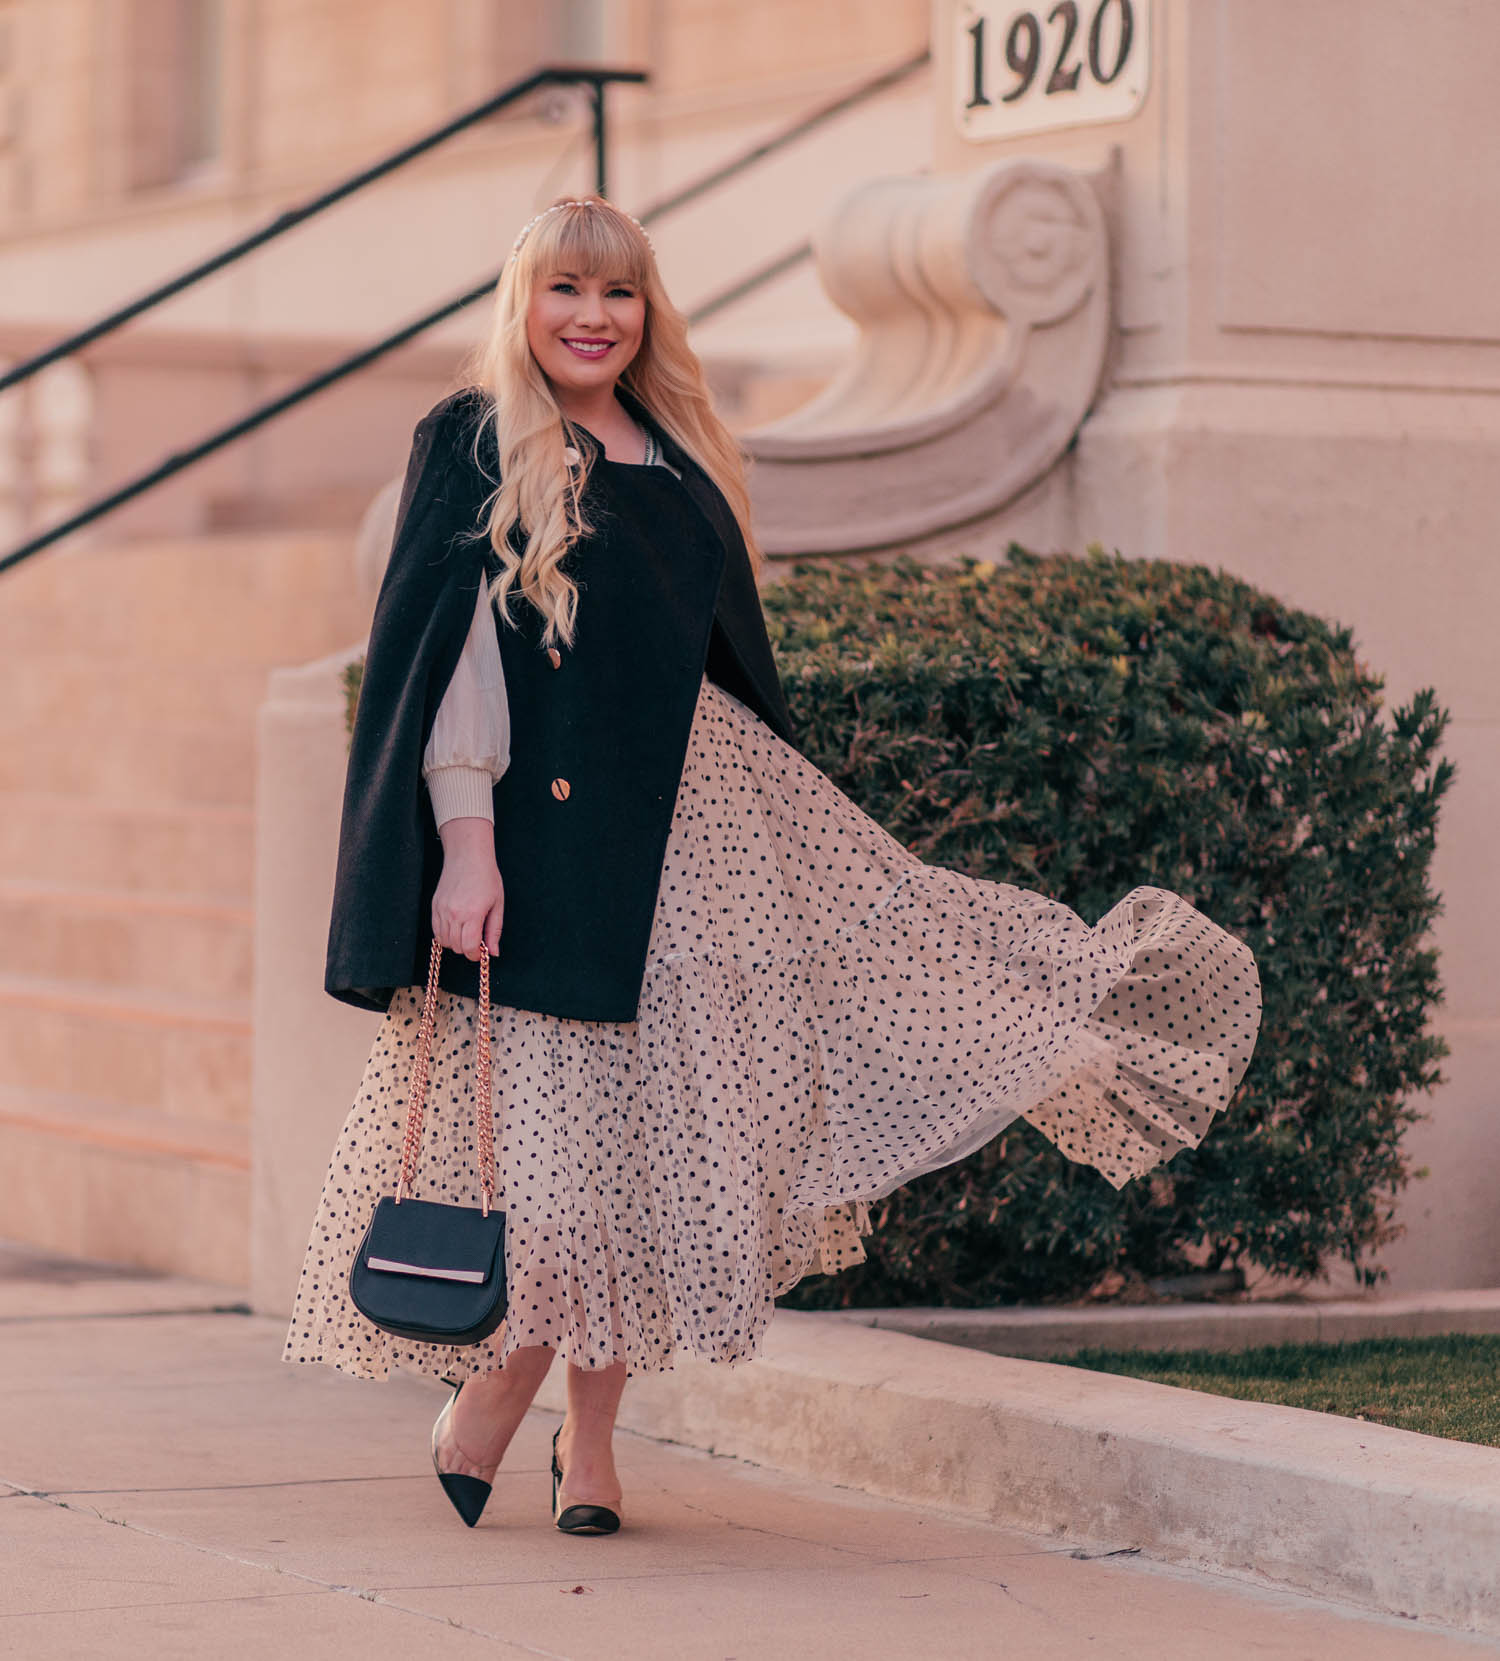 Feminine Fashion Blogger Elizabeth Hugen shares two ways to wear a polka dot tulle skirt outfit including with a chic black cape